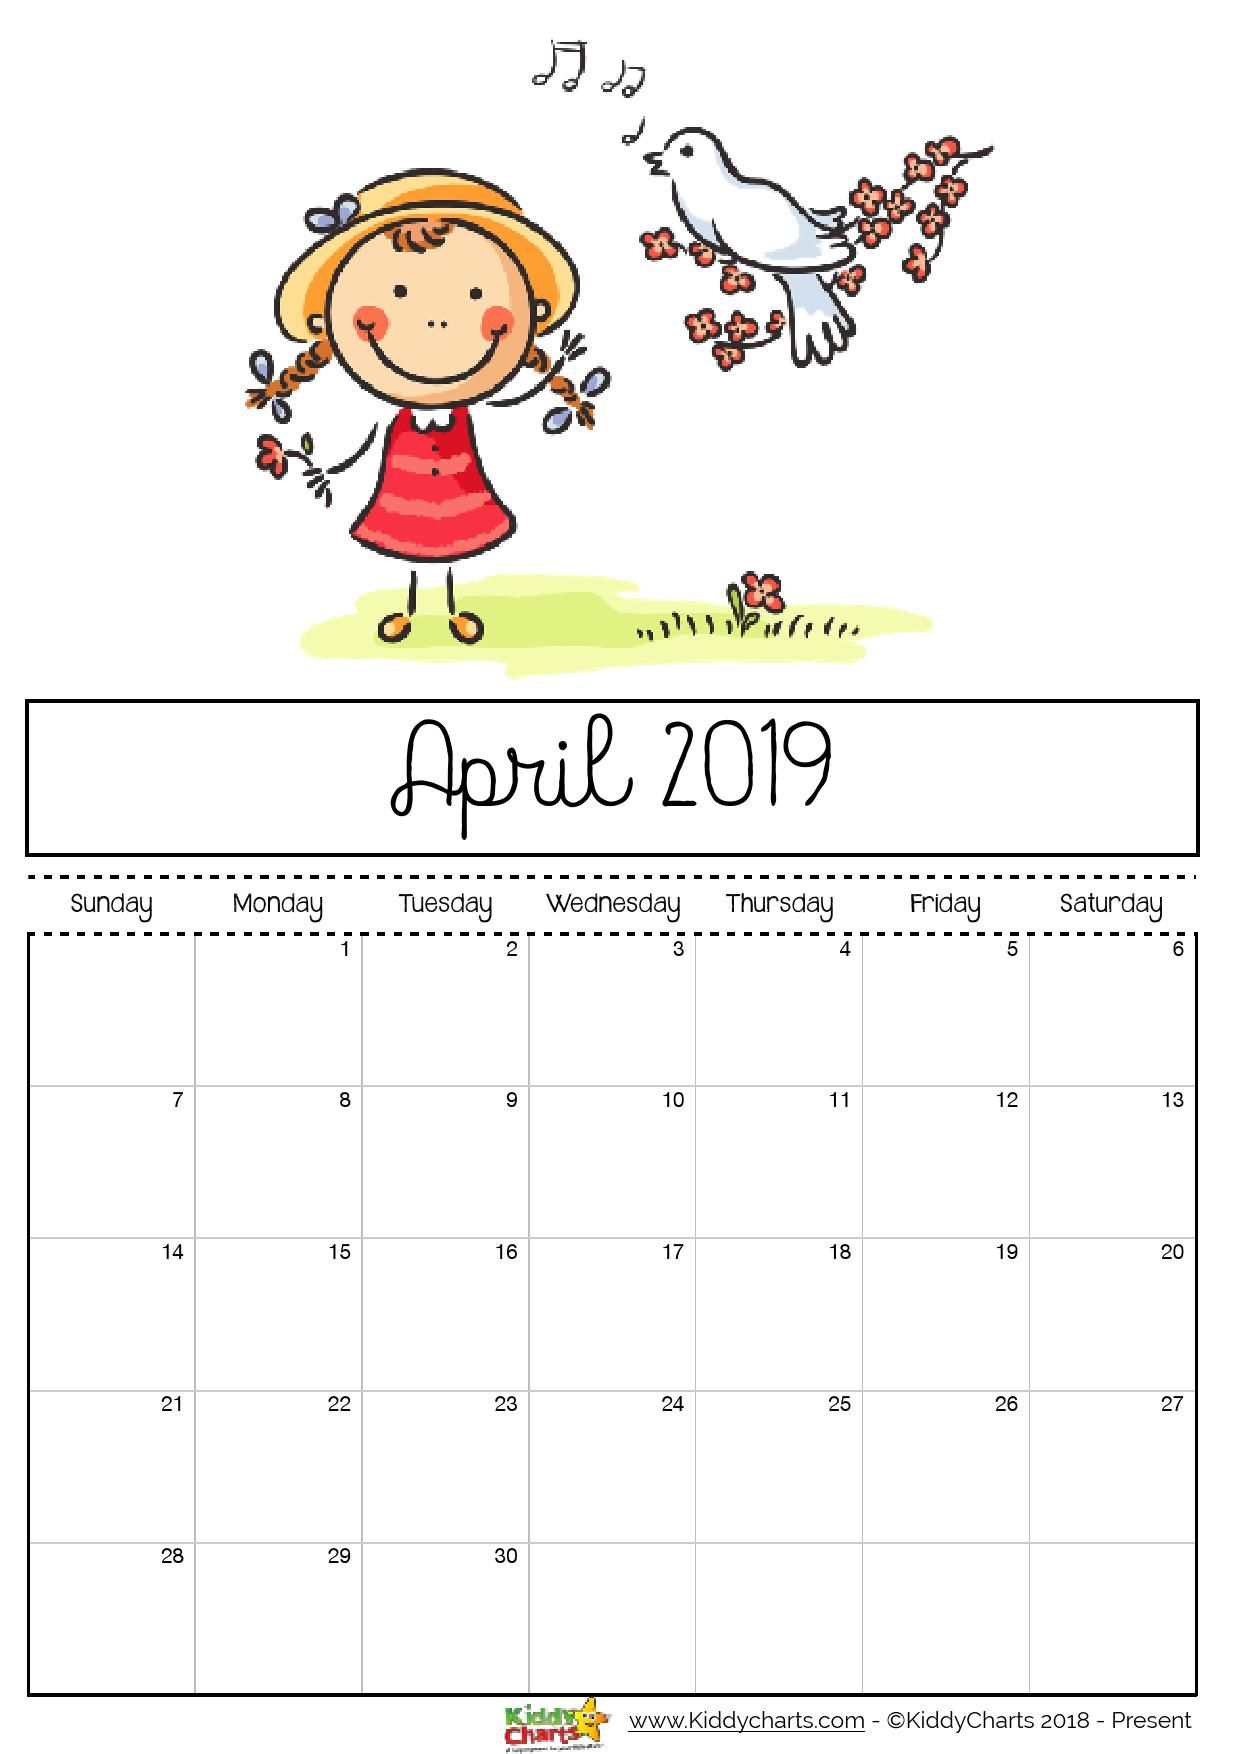 April Printable Calendar Sheet